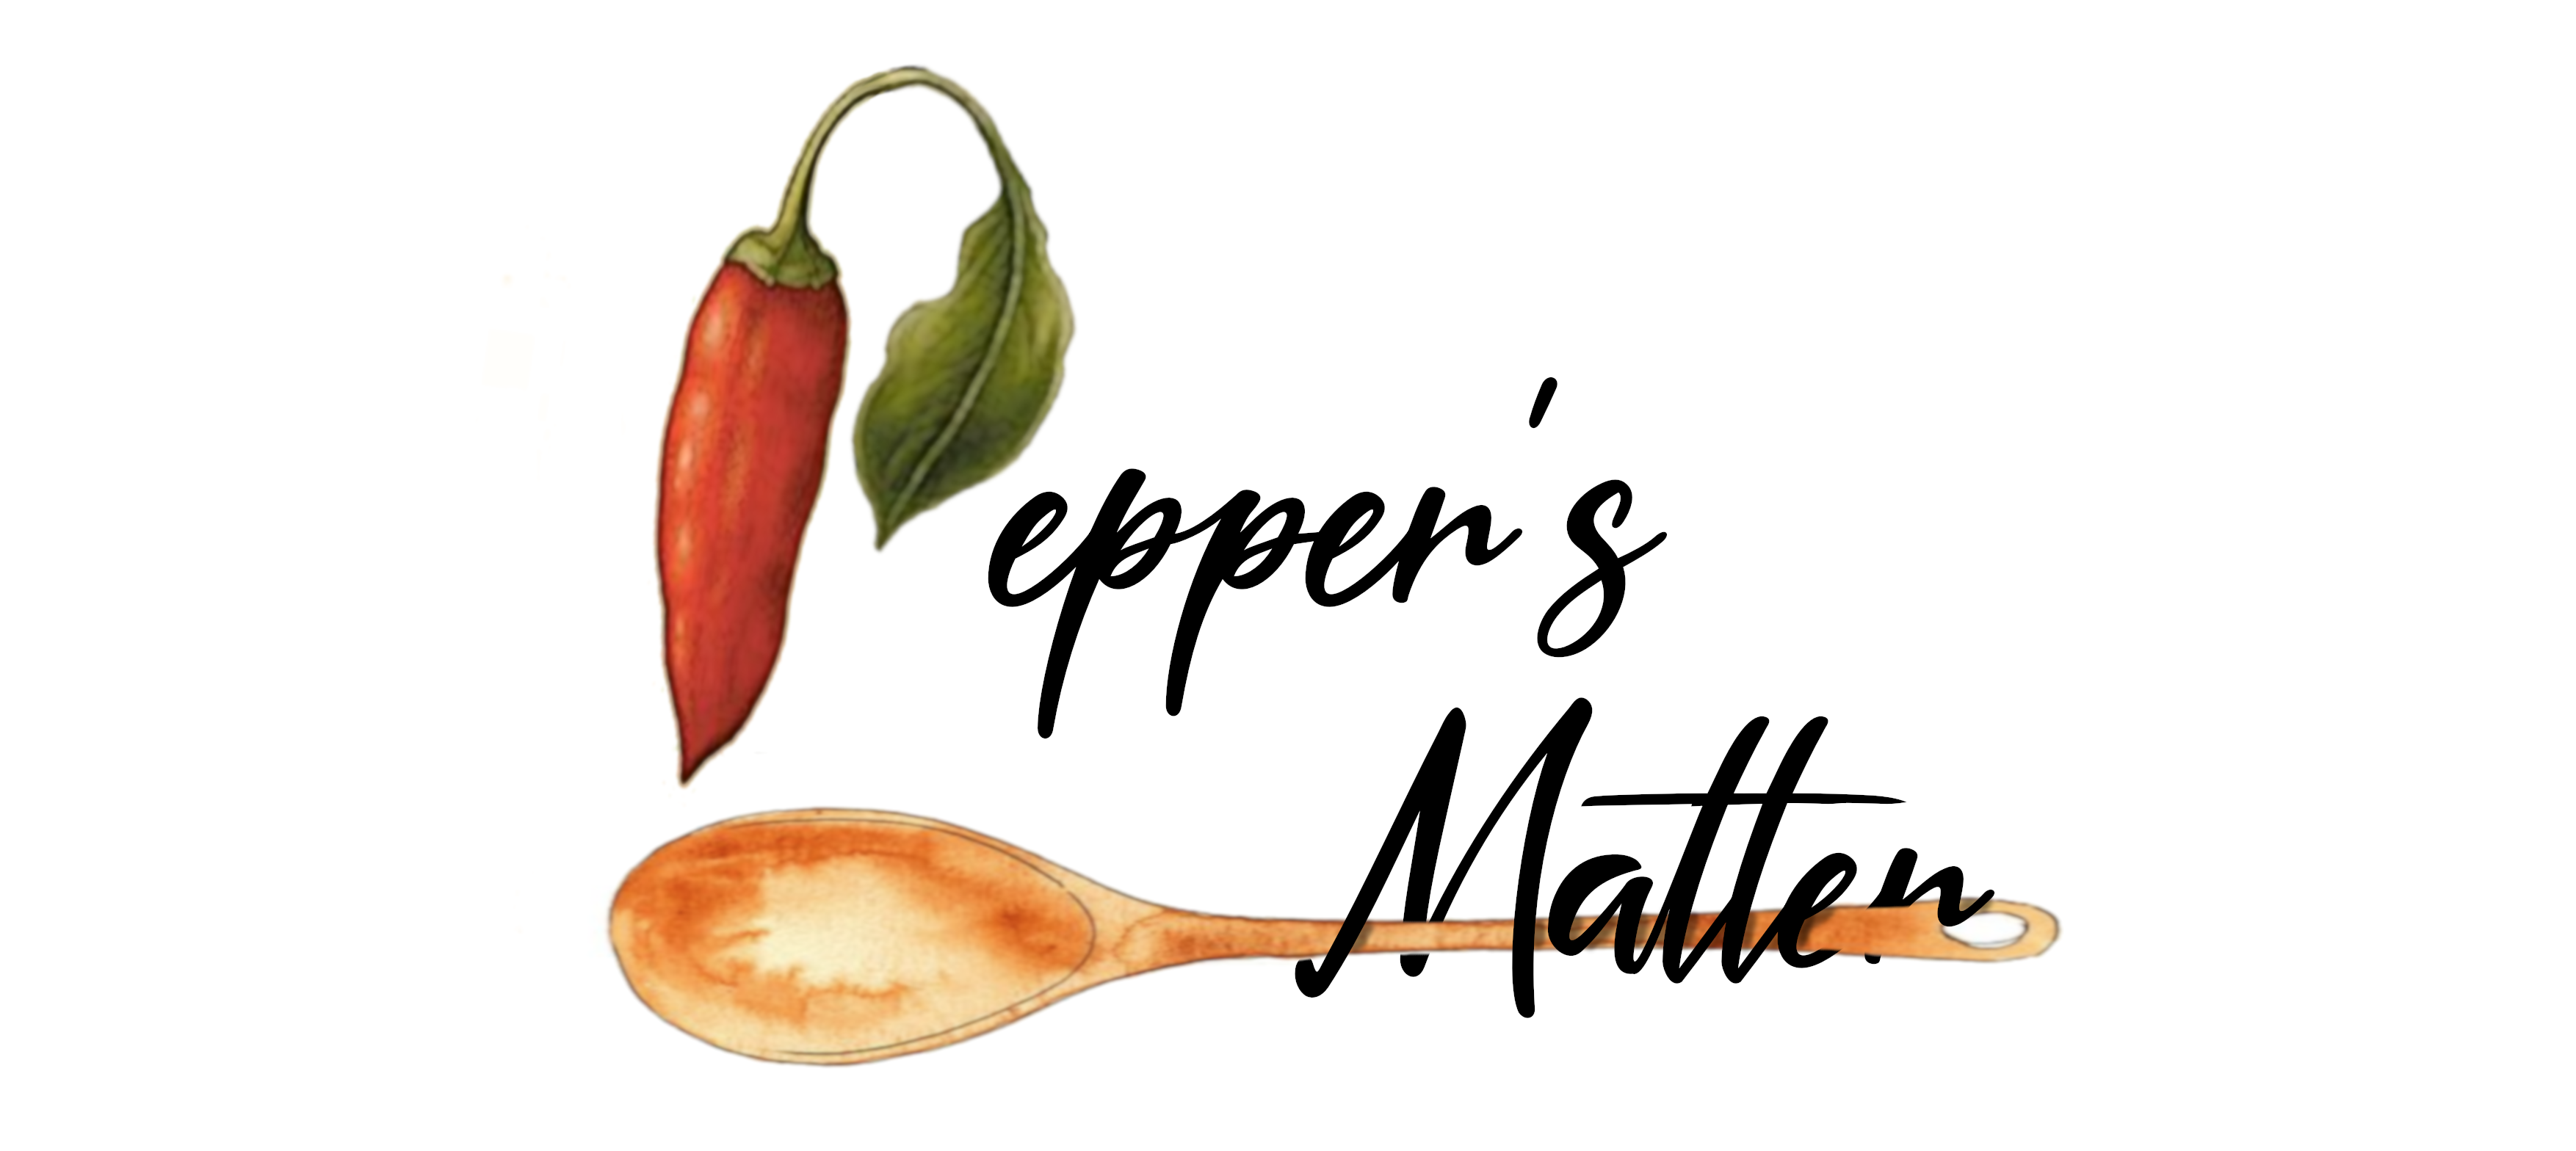 Pepper's Matter